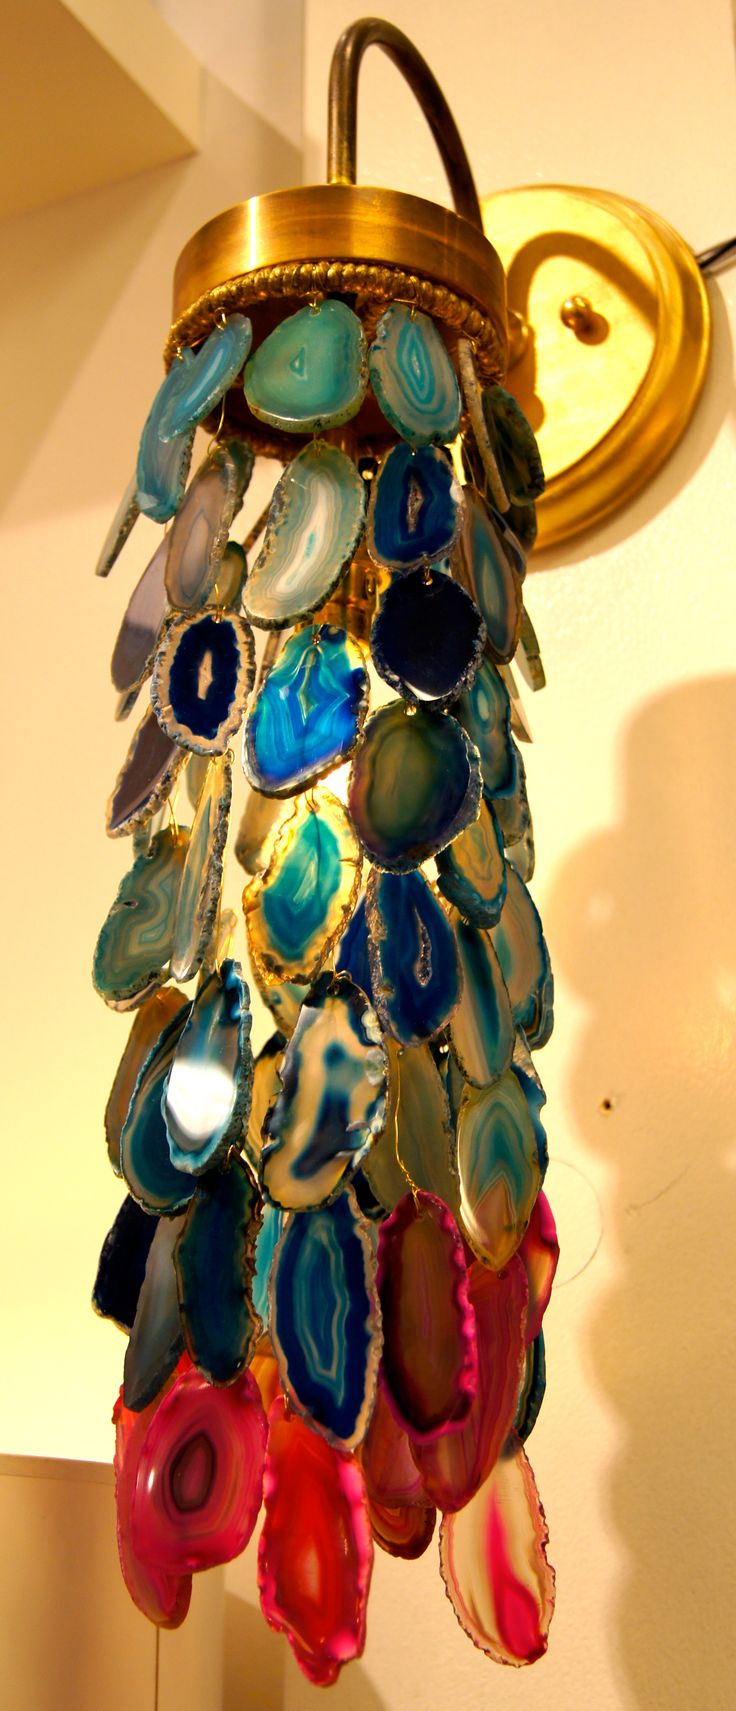 Dying over this beautiful clustered agate sconce from #RoShamBeaux  #Suites at Mkt Sq Salon G6014, G7045 #hpmkt Would you believe it's wired for outdoors too?  #lisamendedesign, #stylespotter